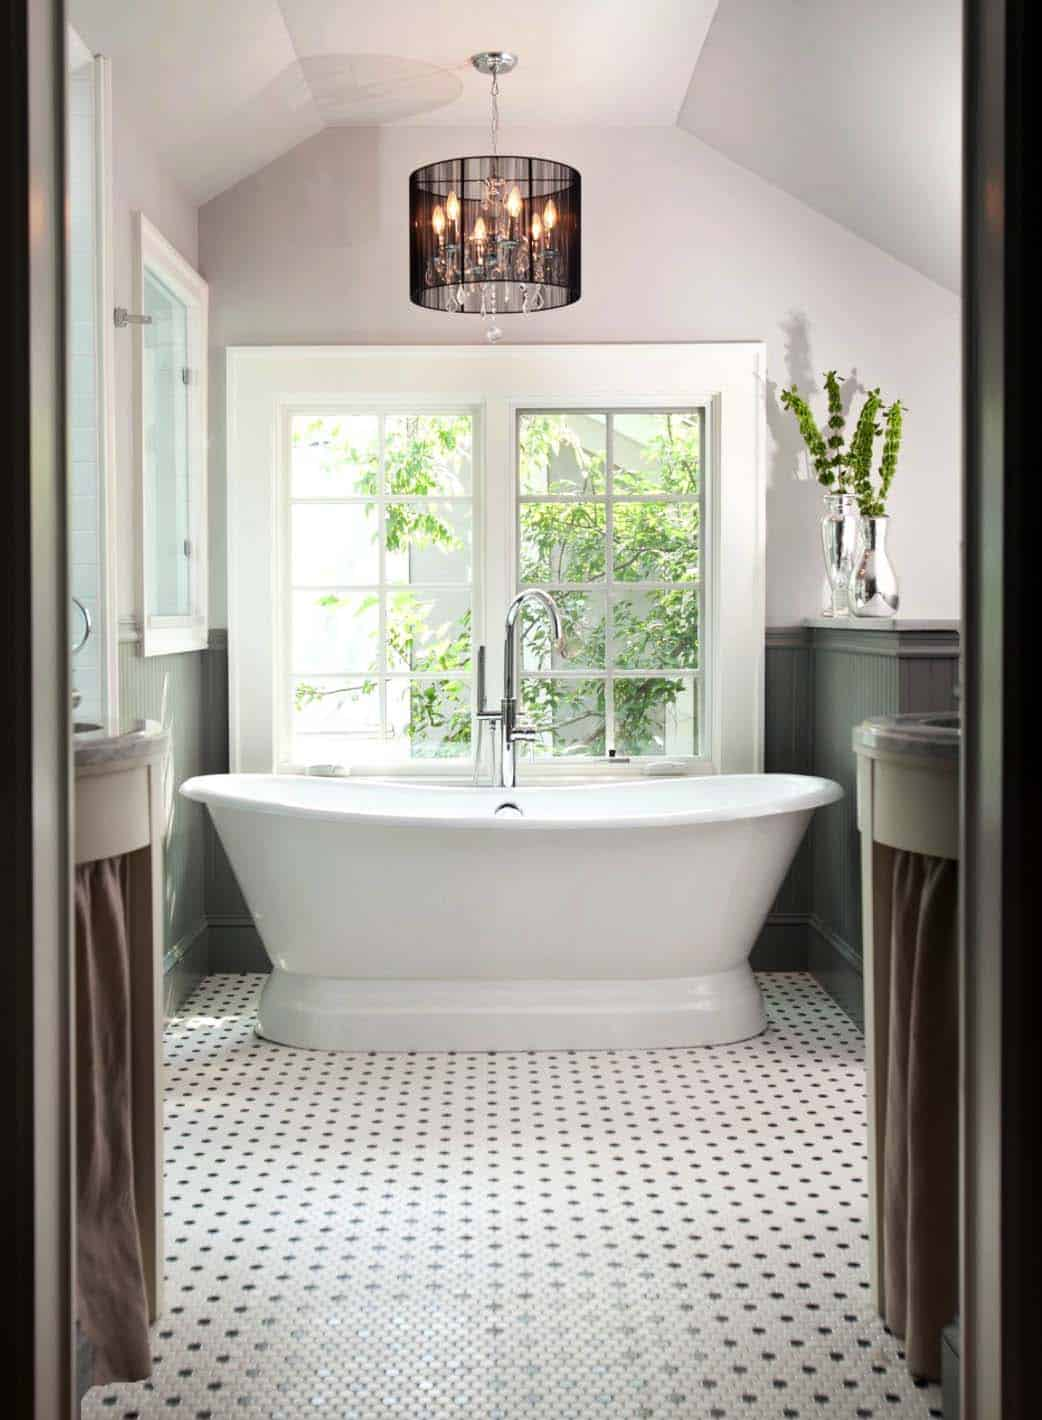 Freestanding-Tubs-Bathroom-Ideas-10-1 Kindesign